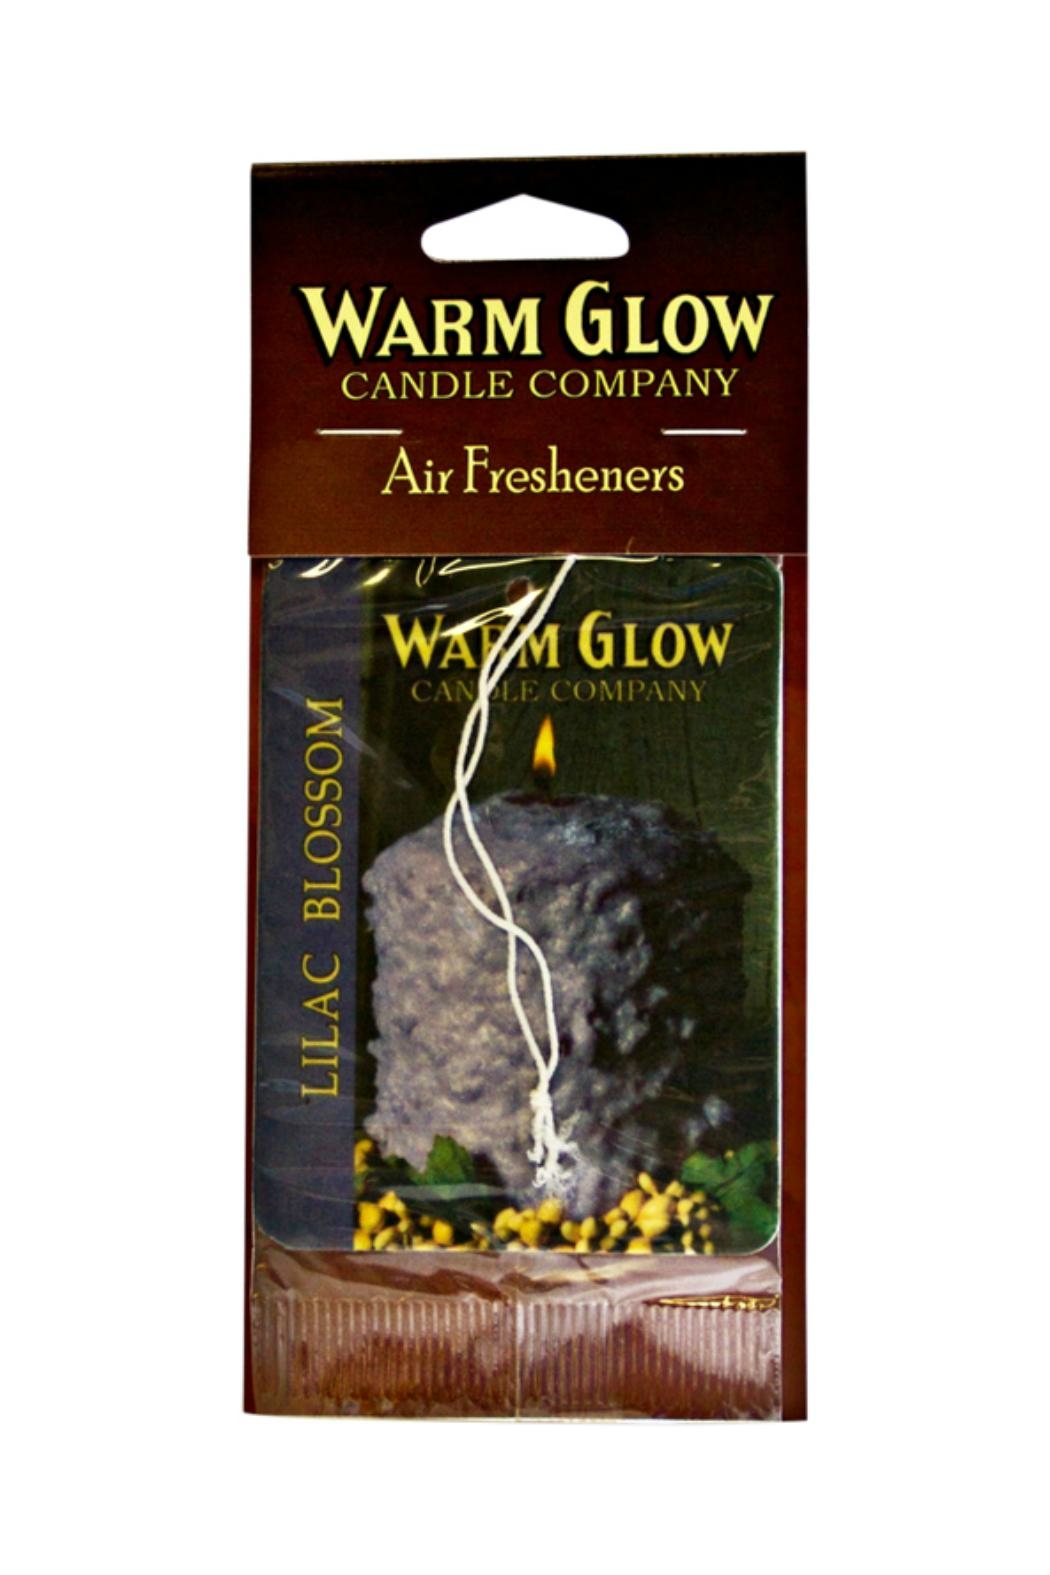 Warm Glow Candle Company Lilac-Blossom Air Freshener - Main Image